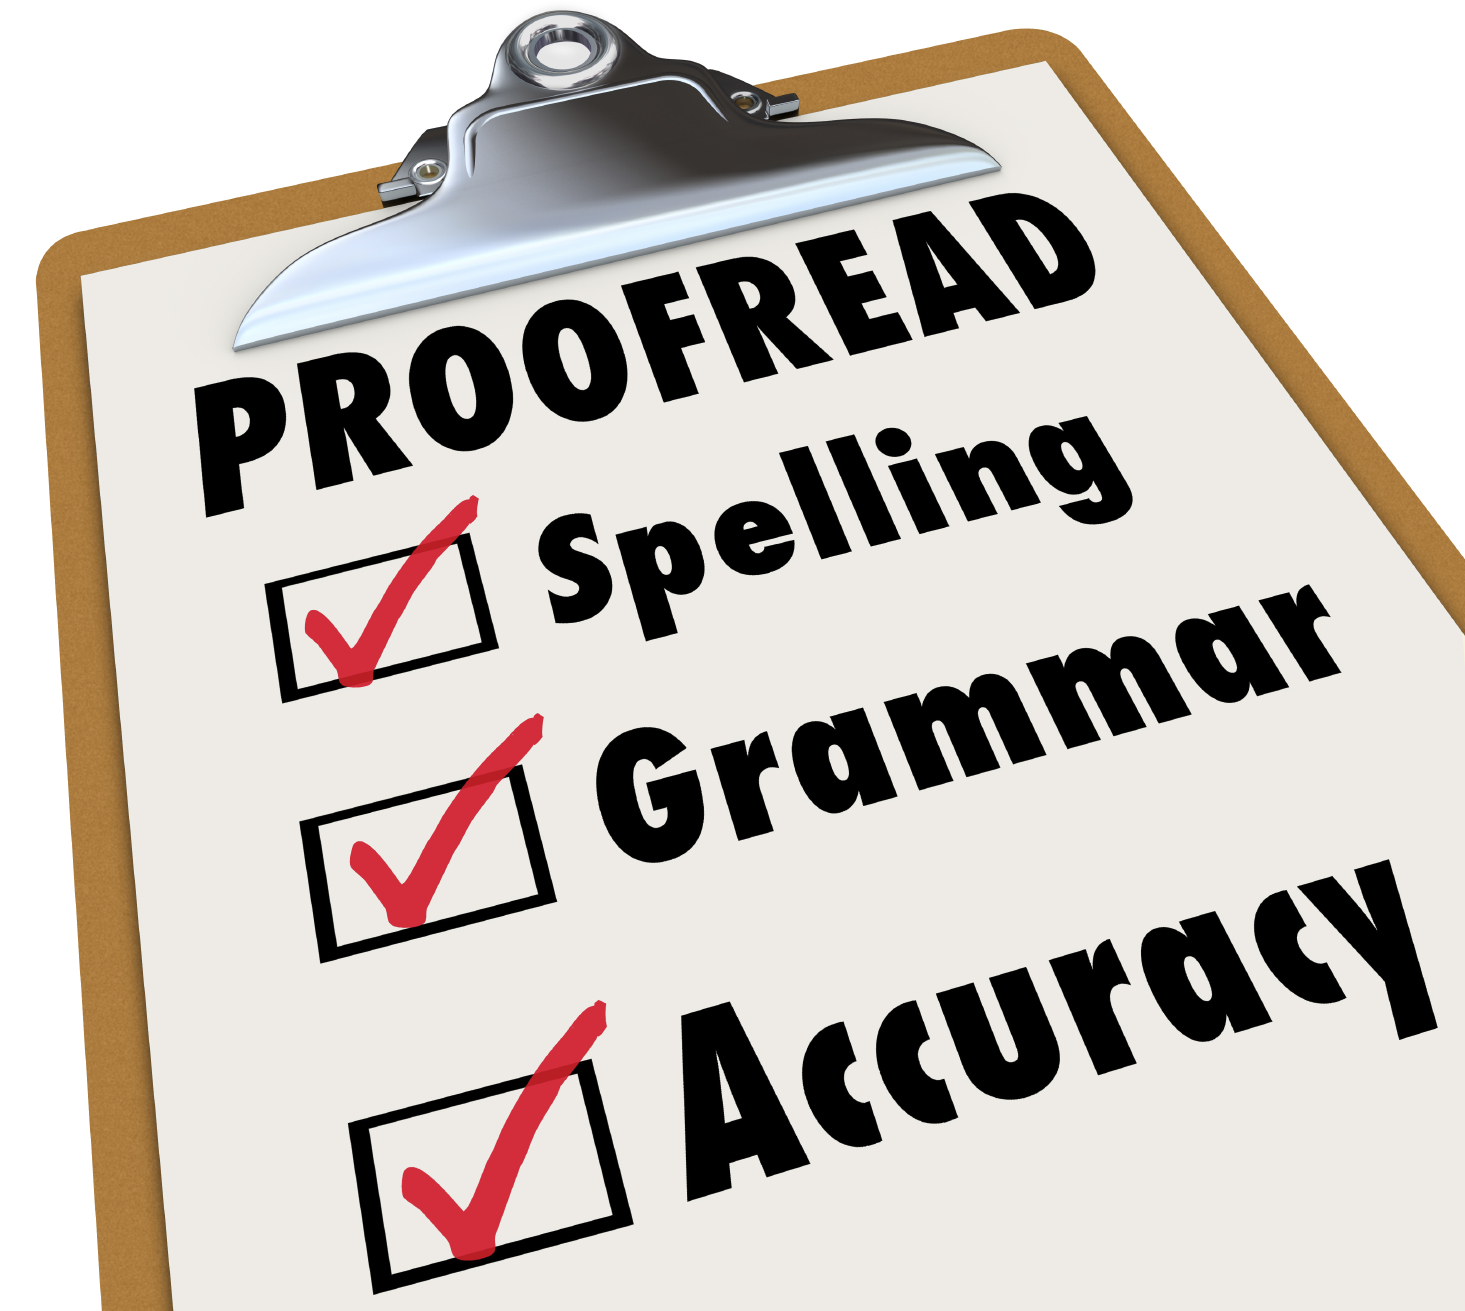 Proofread checklist and checked boxes next to the words spelling, grammar and accuracy as the things an editor reviews in an essay, article or report